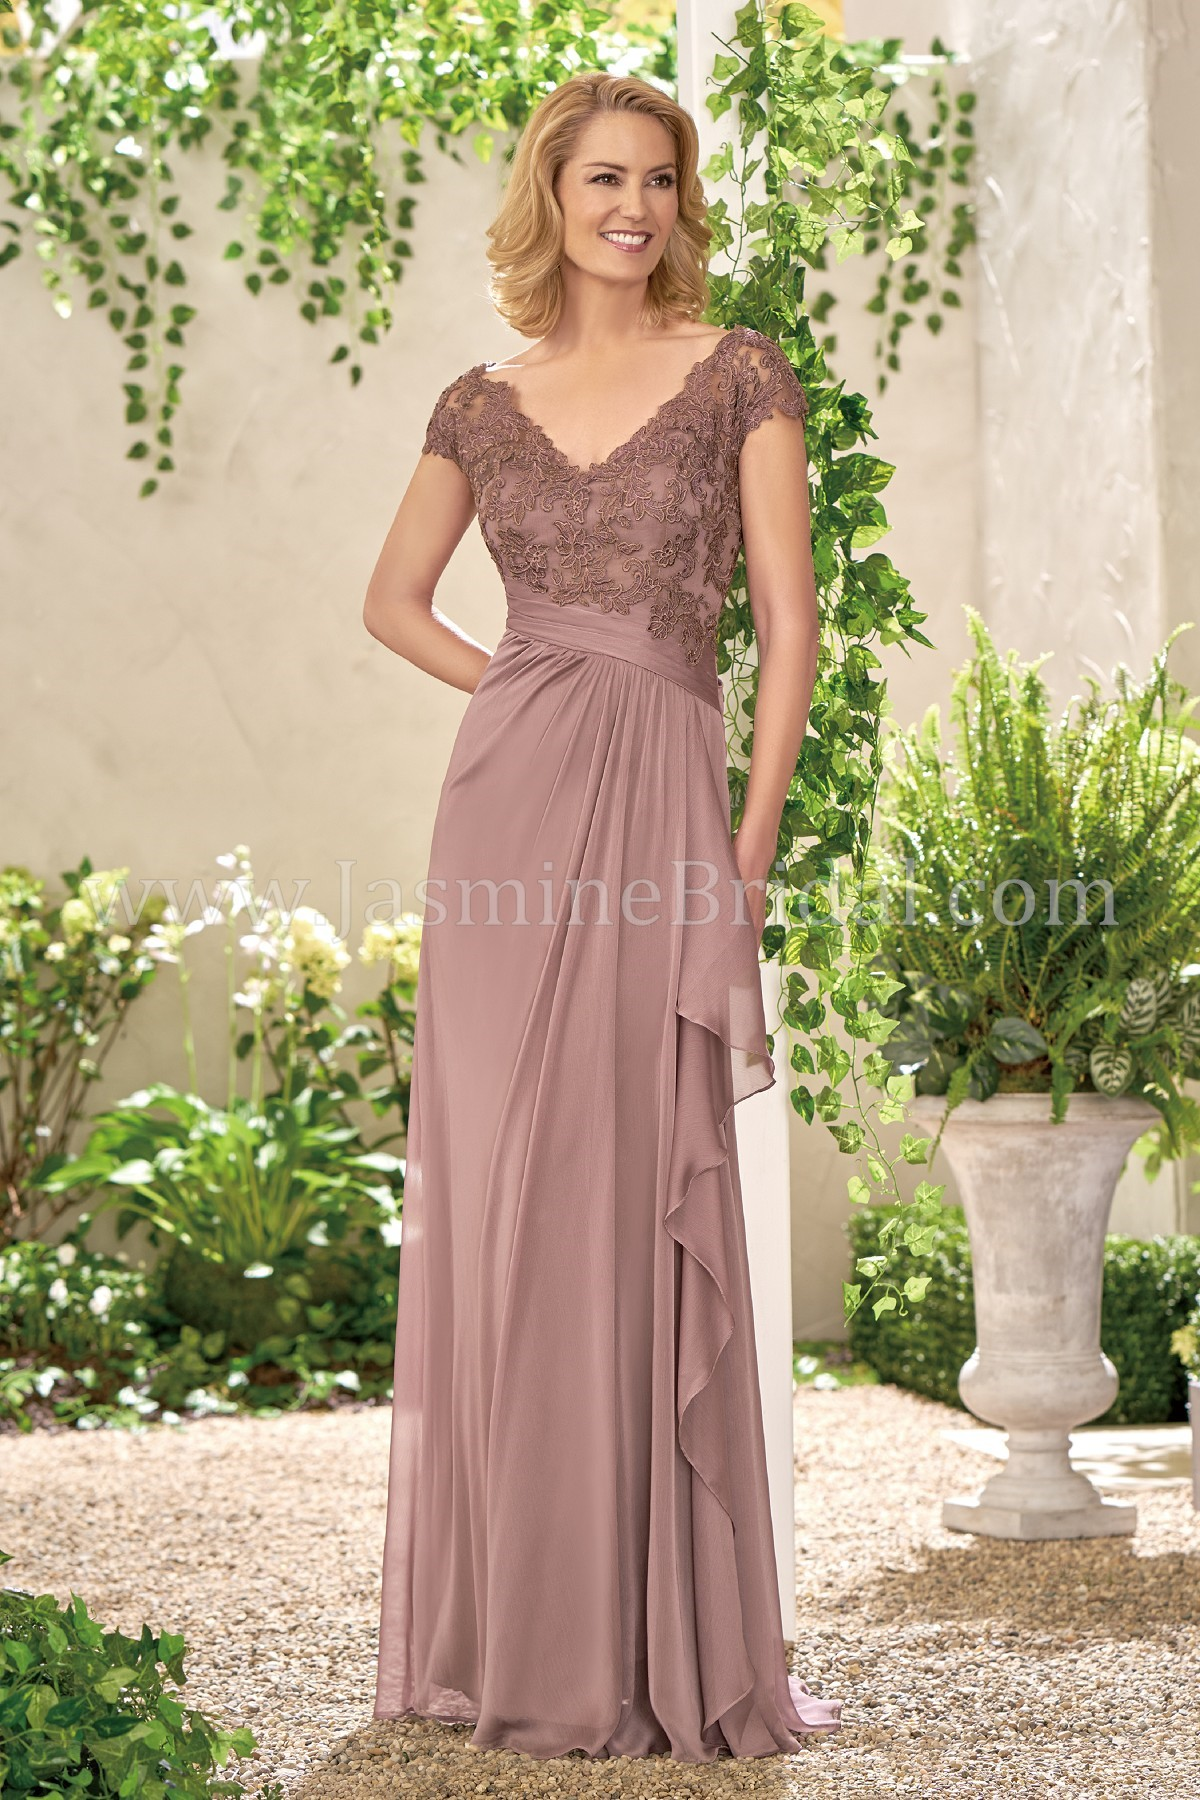 f18b1e87825 J195008 Long V-neck Lace   Chiffon MOB Dress with Cap Sleeves